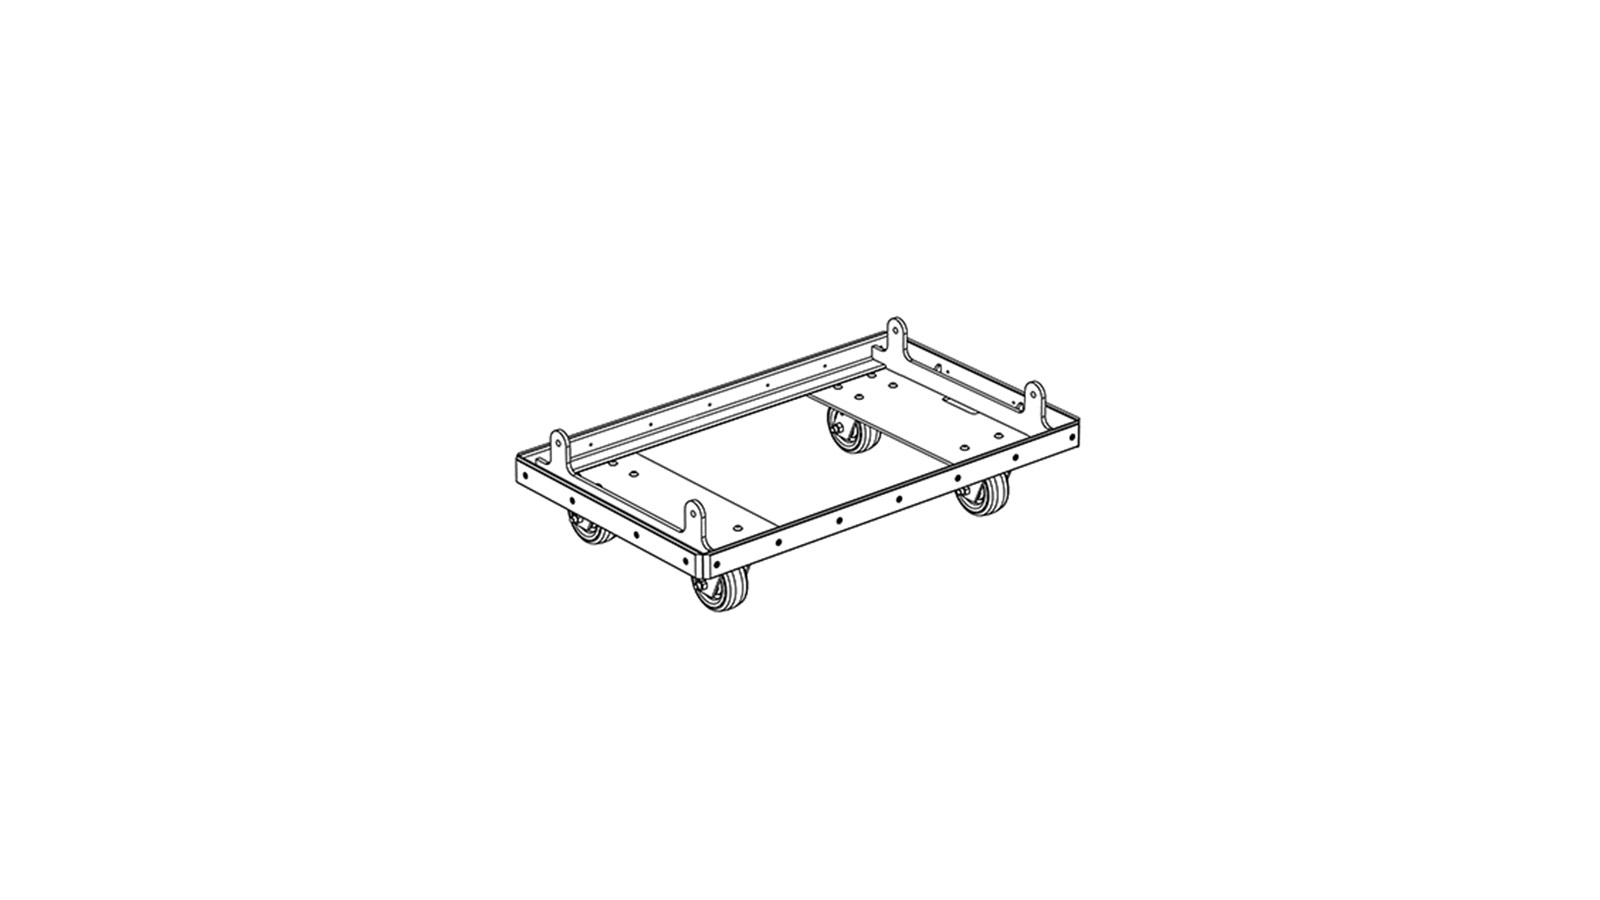 caster frame kit - used to transport up to 4 lyon highpart number:  40 232 045 01